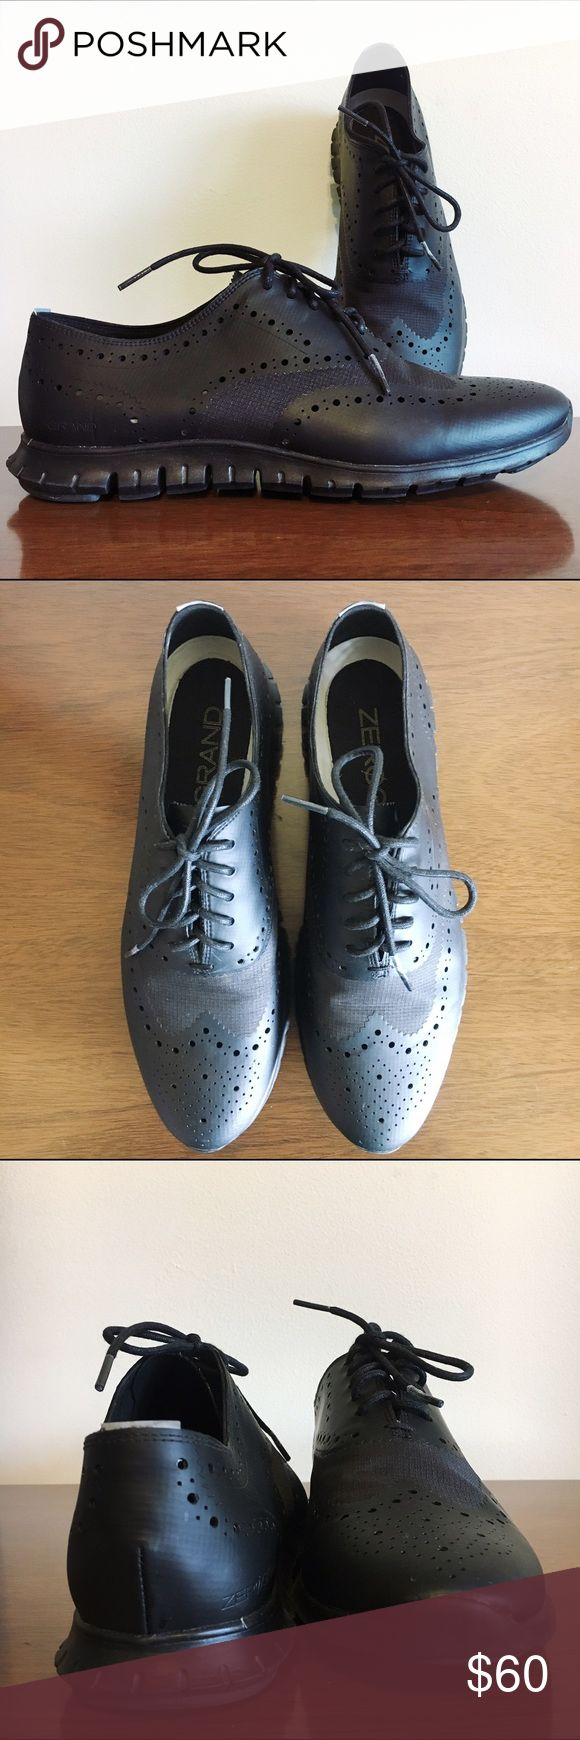 Cole Haan ZeroGrand Wingtip Oxfords Brand new adorable Cole Haan Oxford shoes in black. Never worn, only tried on. Size 10. Cole Haan Shoes Flats & Loafers